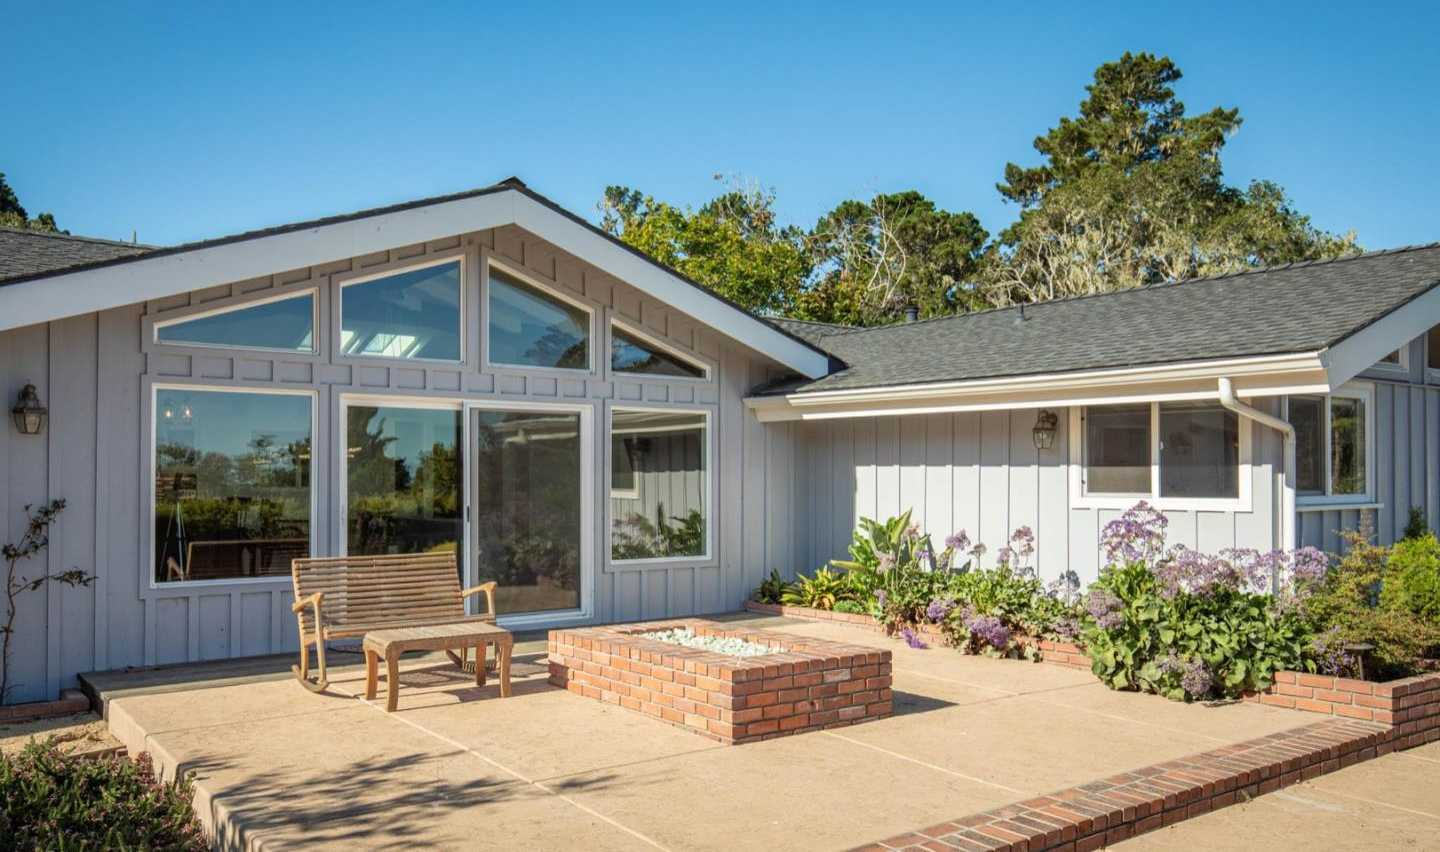 $1,699,000 - 3Br/2Ba -  for Sale in Pebble Beach